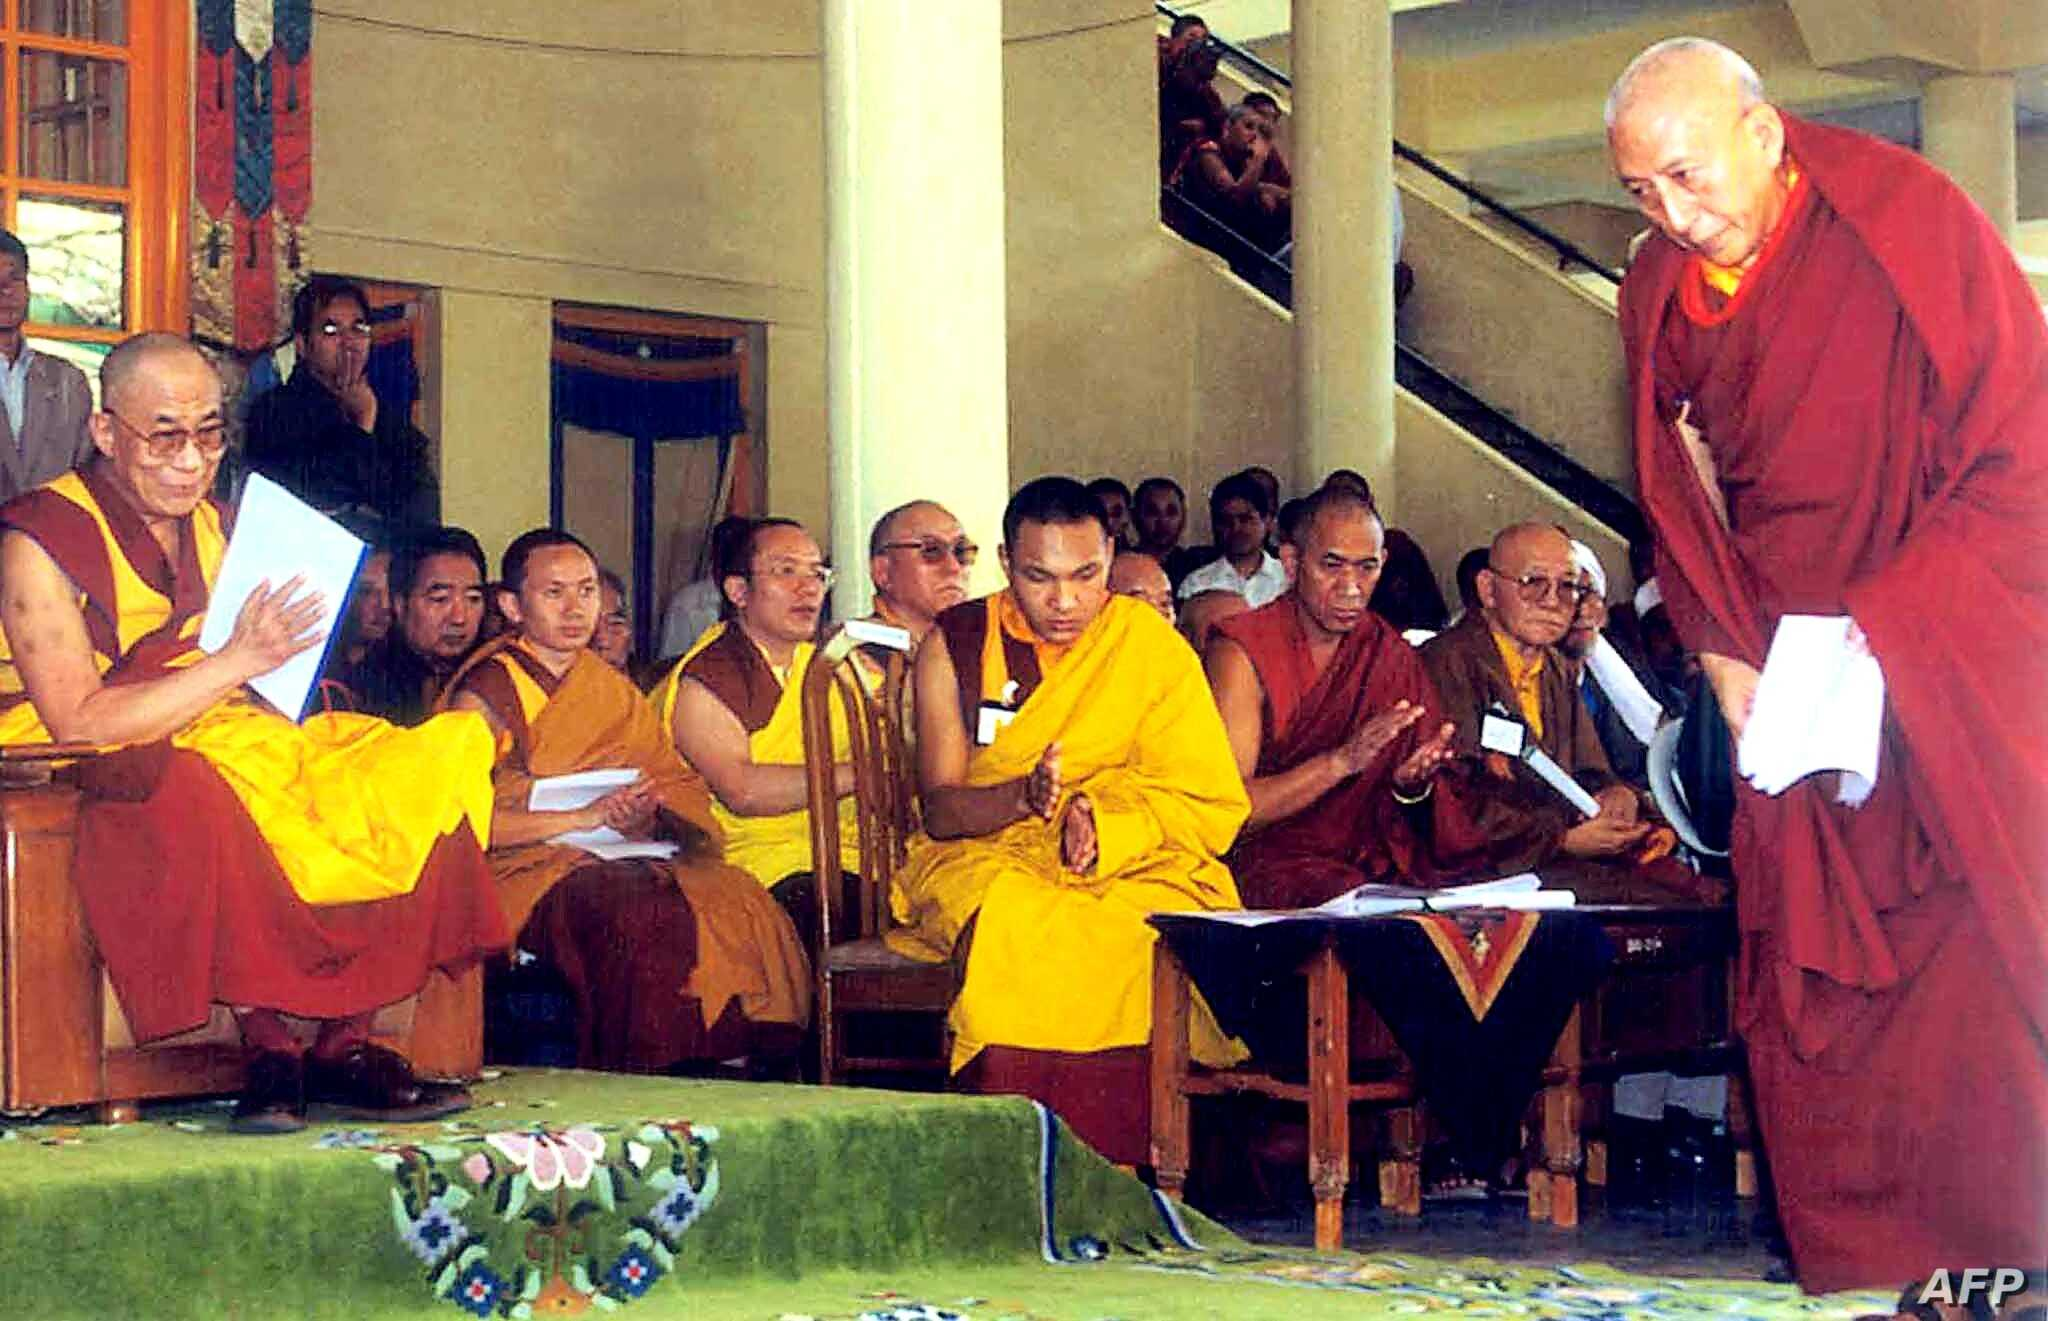 FILE - Tibetan spiritual leader Dalai Lama (L) greets Prime Minister of the Tibetan government-in-exile Samdong Rinpoche (R) during celebrations of the 360th anniversary of the creation of the Tibetan government, in Dharamsala, India, June, 5, 2002. ...